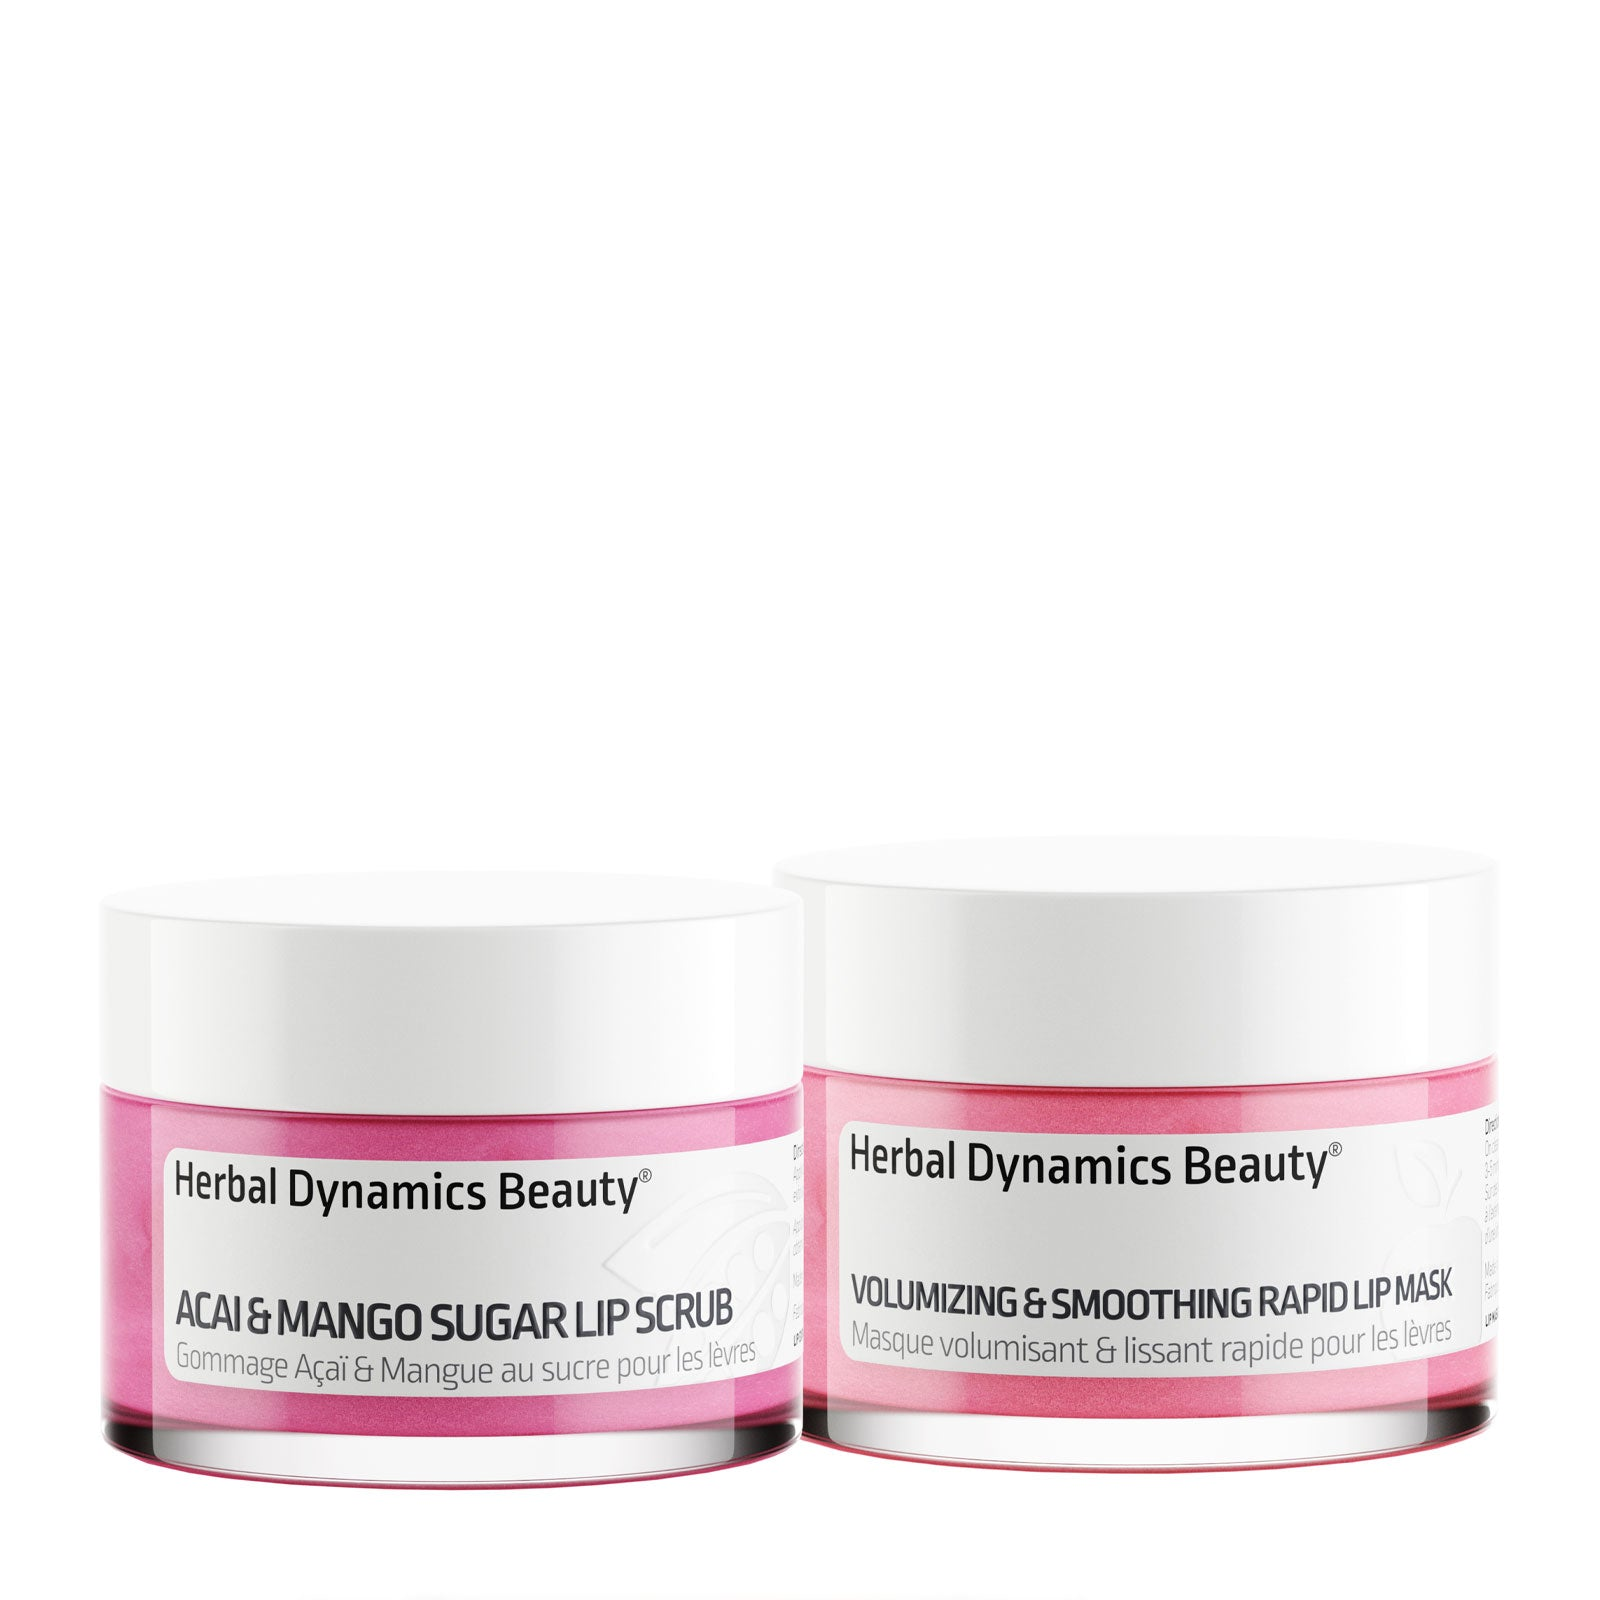 Herbal Dynamics Beauty Volumizing Lip Scrub & Mask Duo 30ml